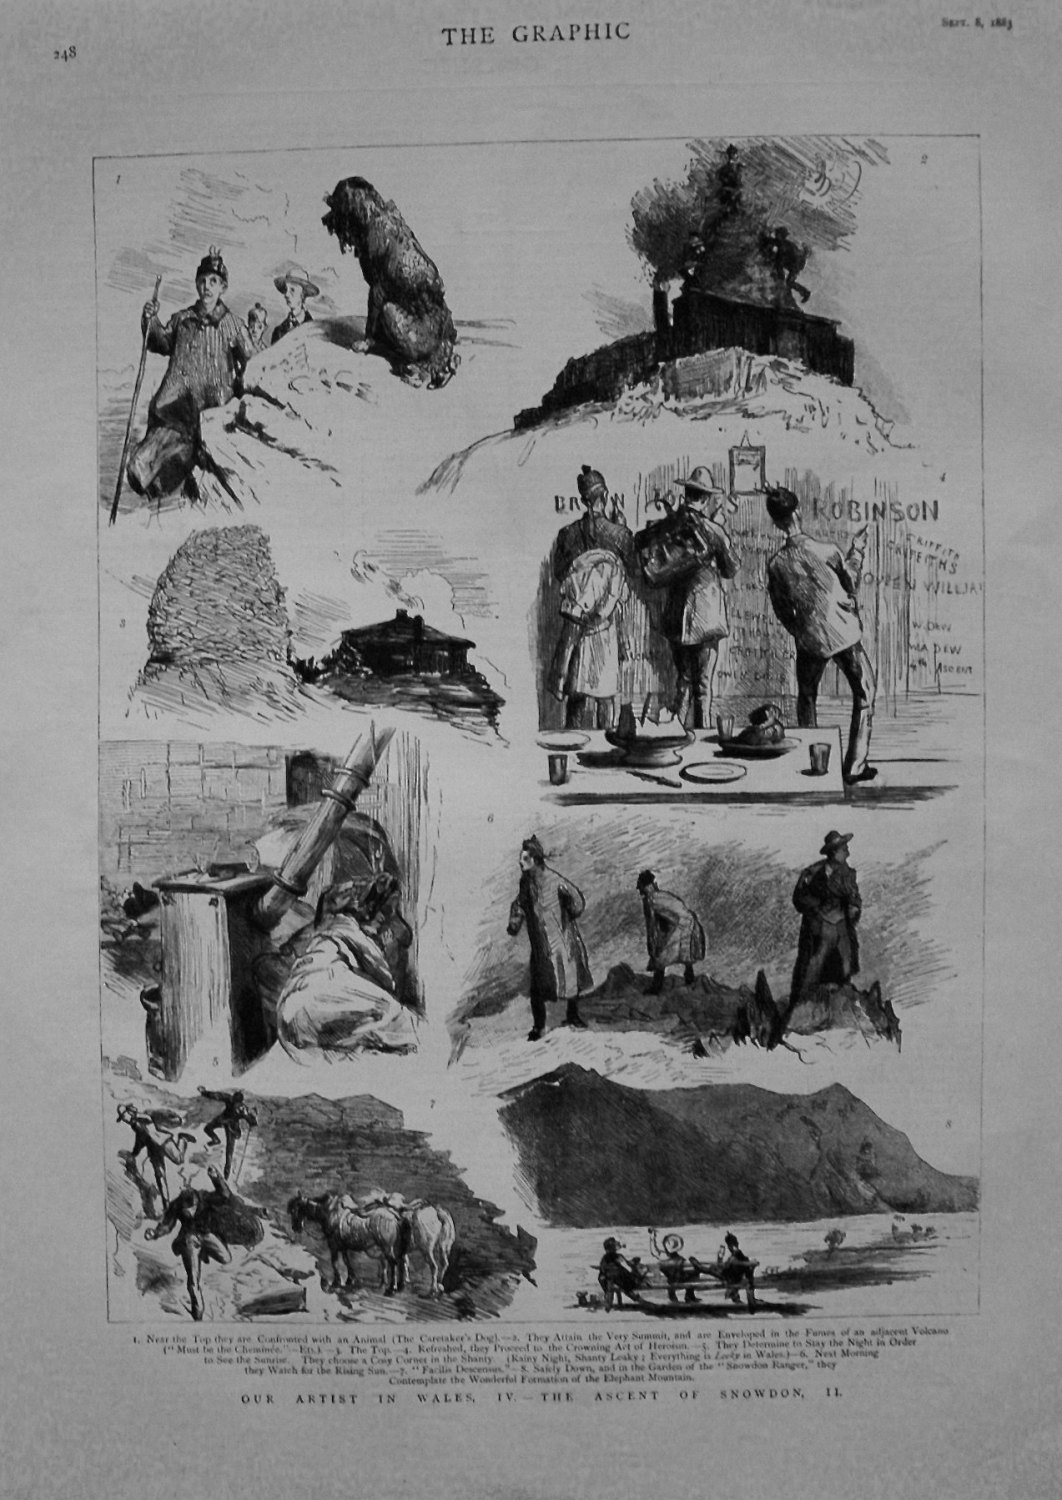 Our Artist in Wales, IV. - The Ascent of Snowdon, II. 1883